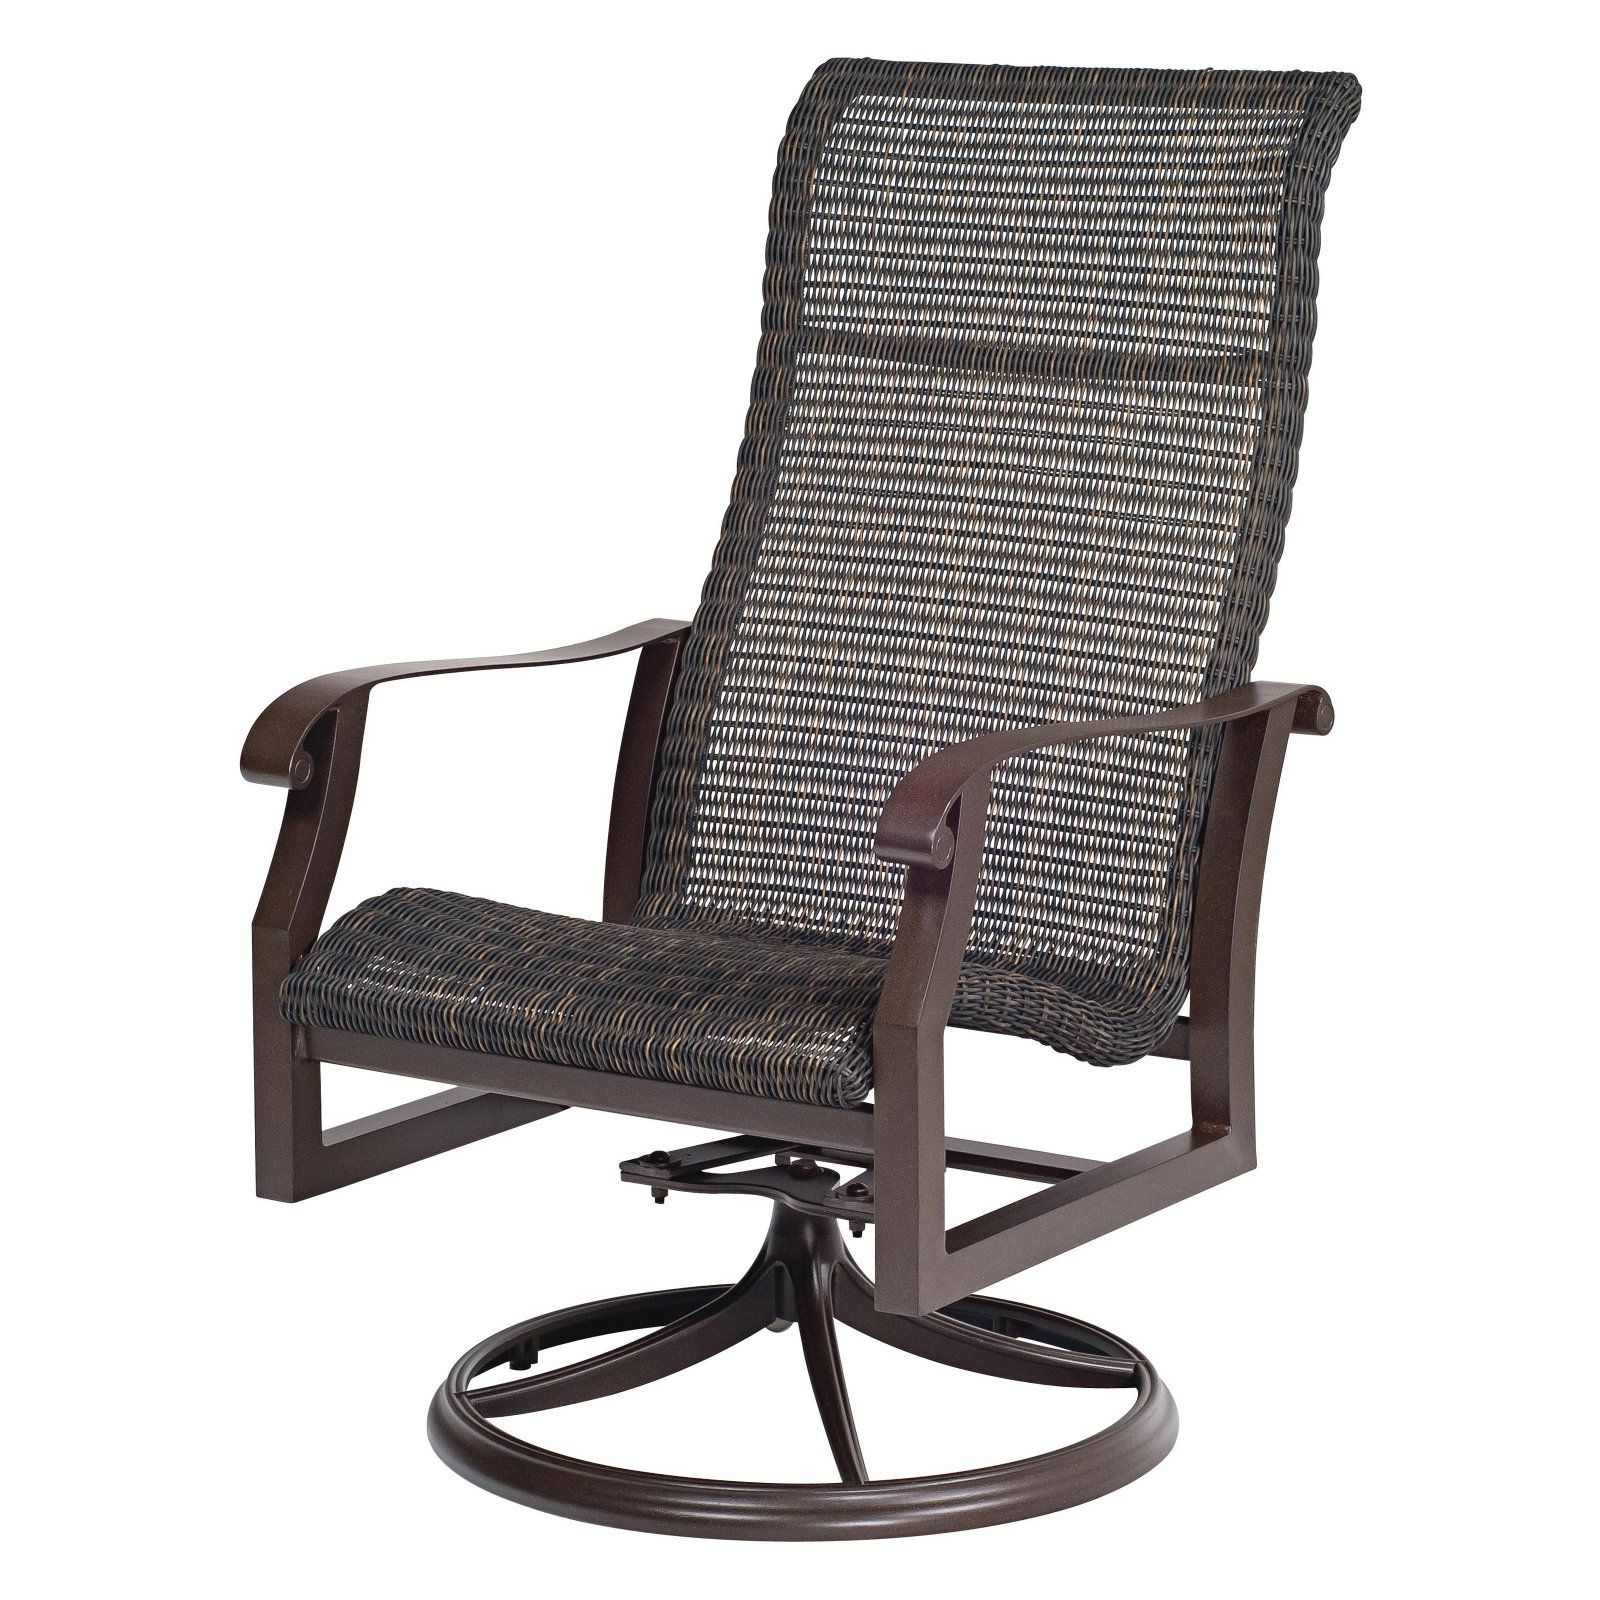 Outdoor Woodard Cortland Woven High Back Swivel Rocker In Favorite Woven High Back Swivel Chairs (Gallery 1 of 30)